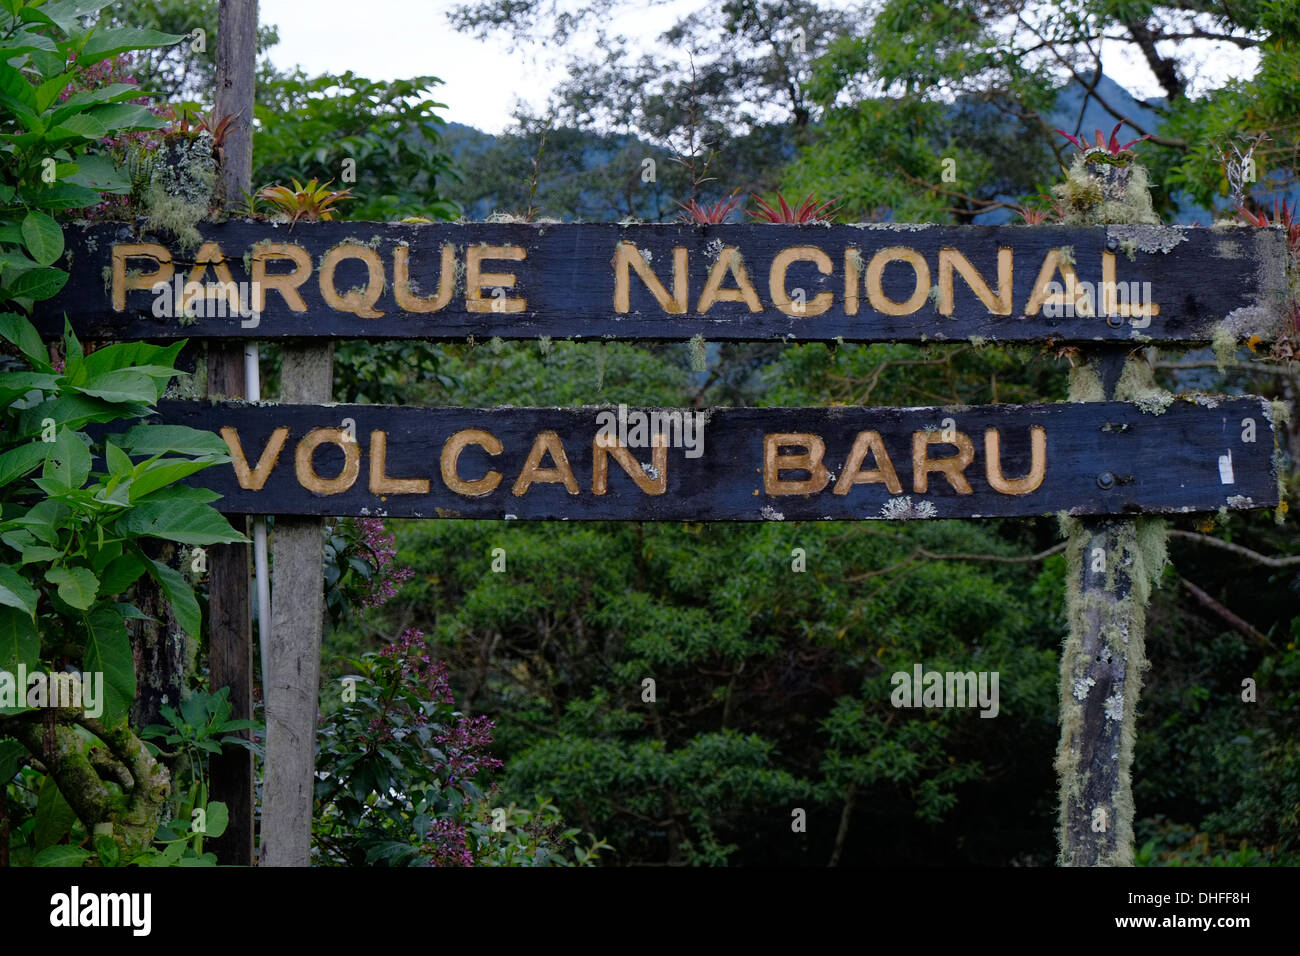 Entrance to national park Volcan Baru in western Chiriqui Province Republic of Panama - Stock Image